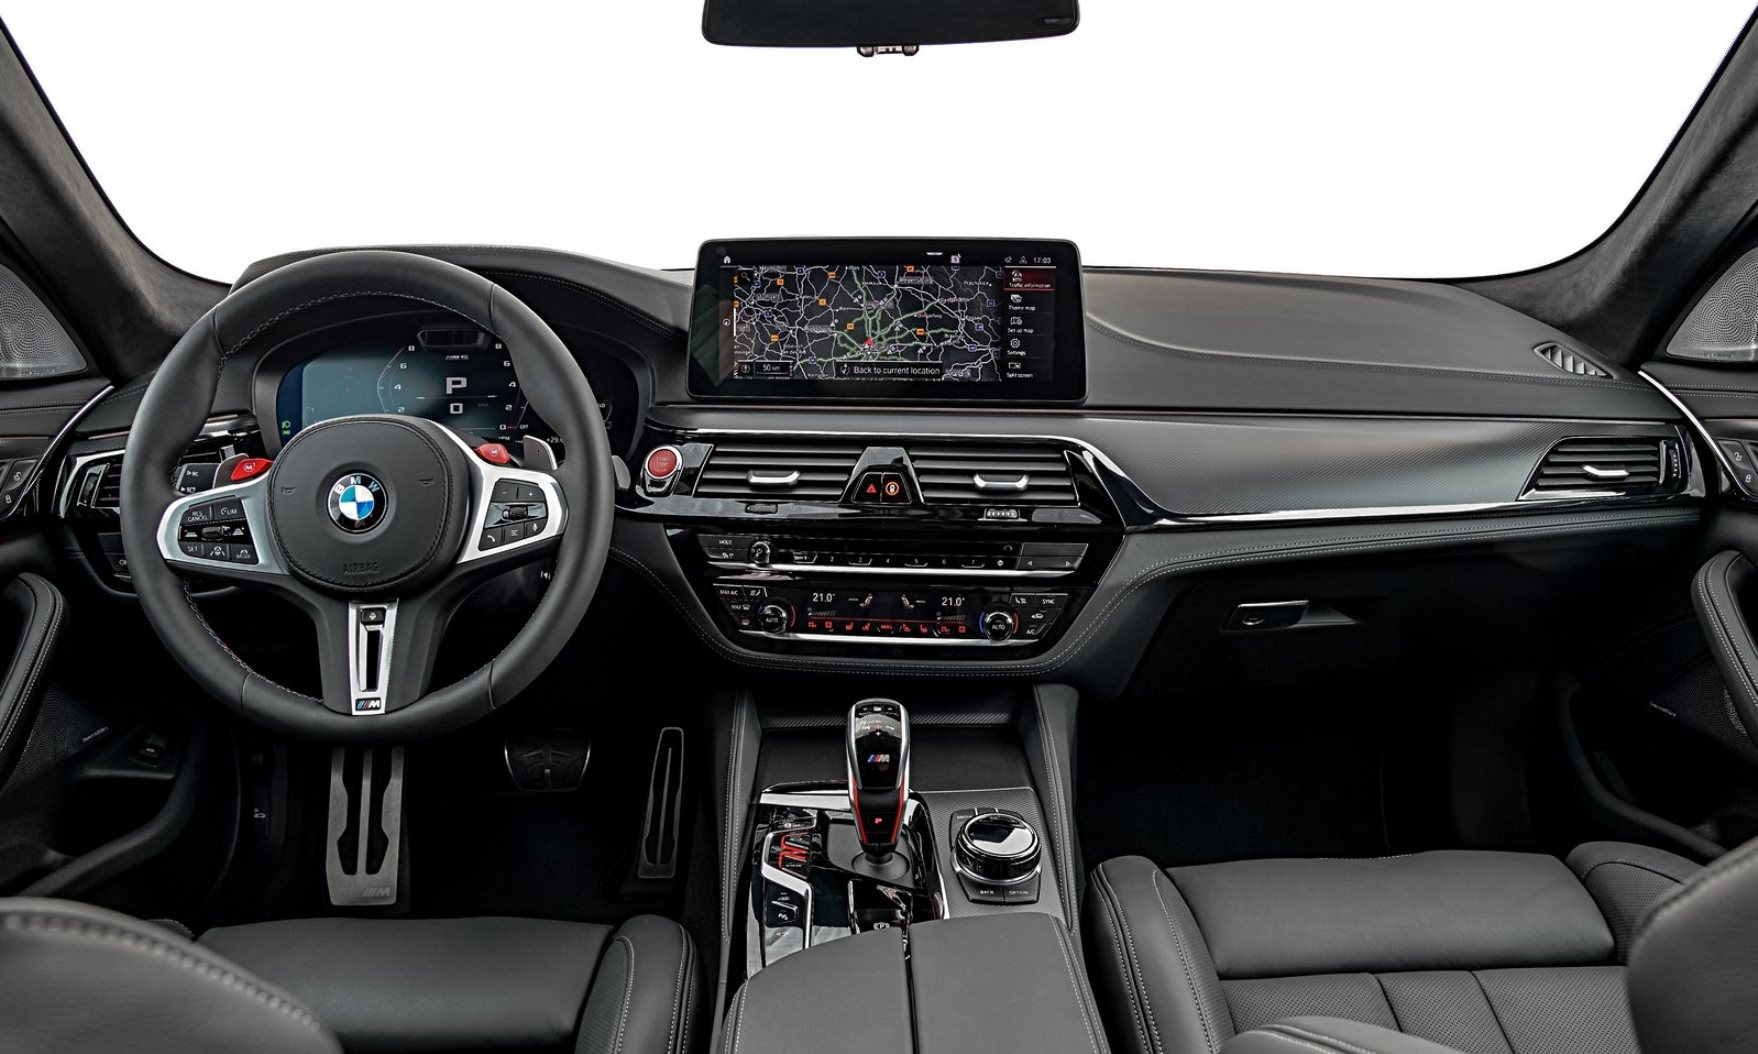 Facelifted BMW M5 interior